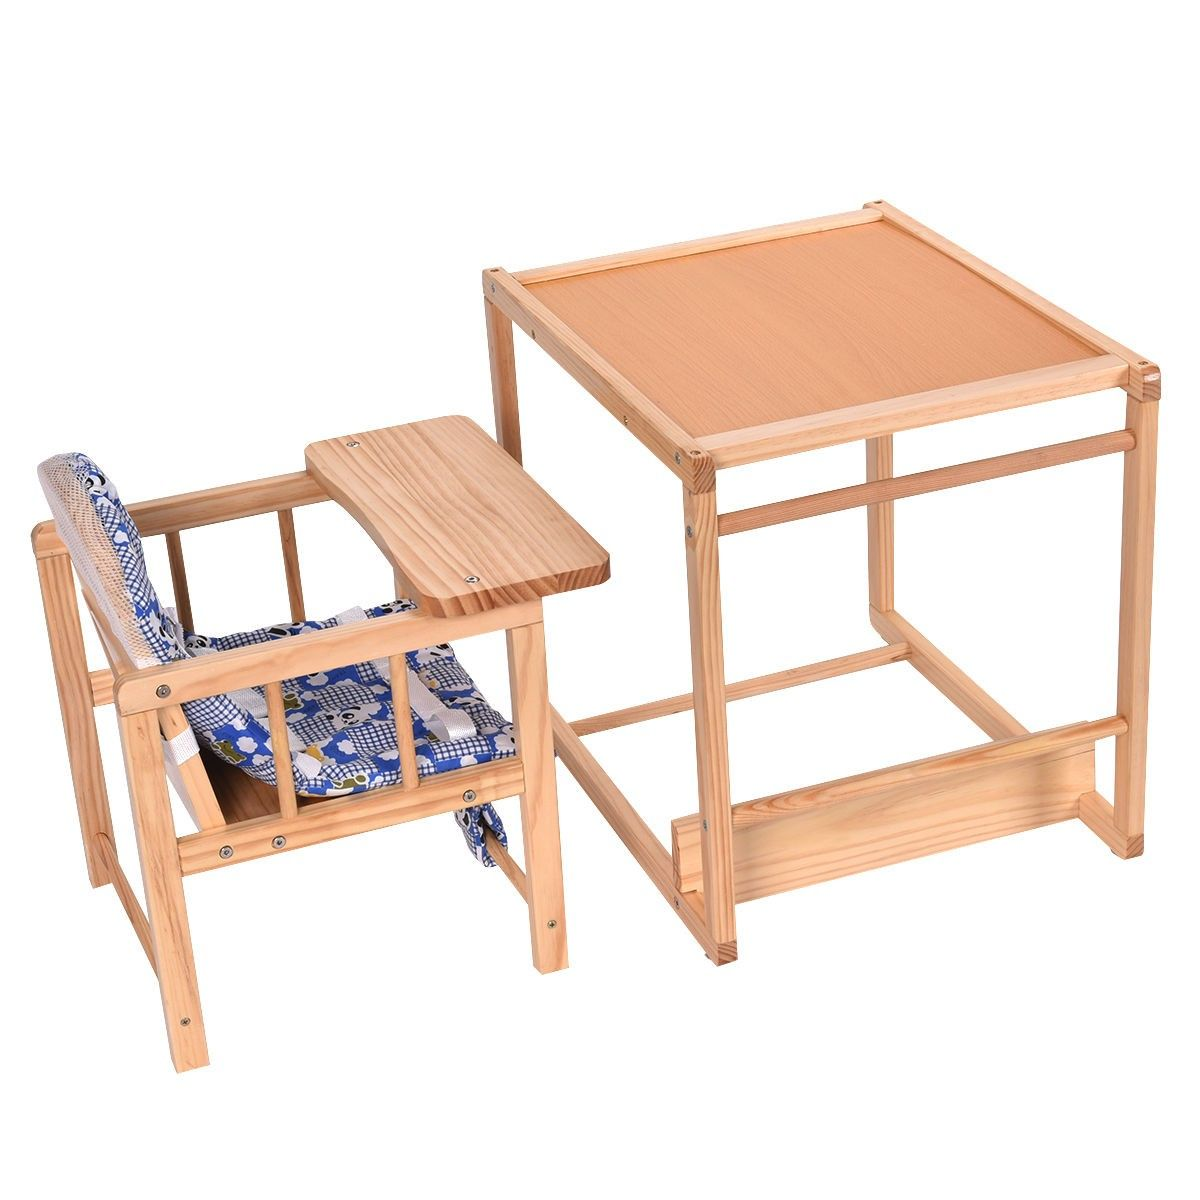 Surprising 2 In 1 Solid Wooden Baby High Chair Feeding Infant Toddler Caraccident5 Cool Chair Designs And Ideas Caraccident5Info